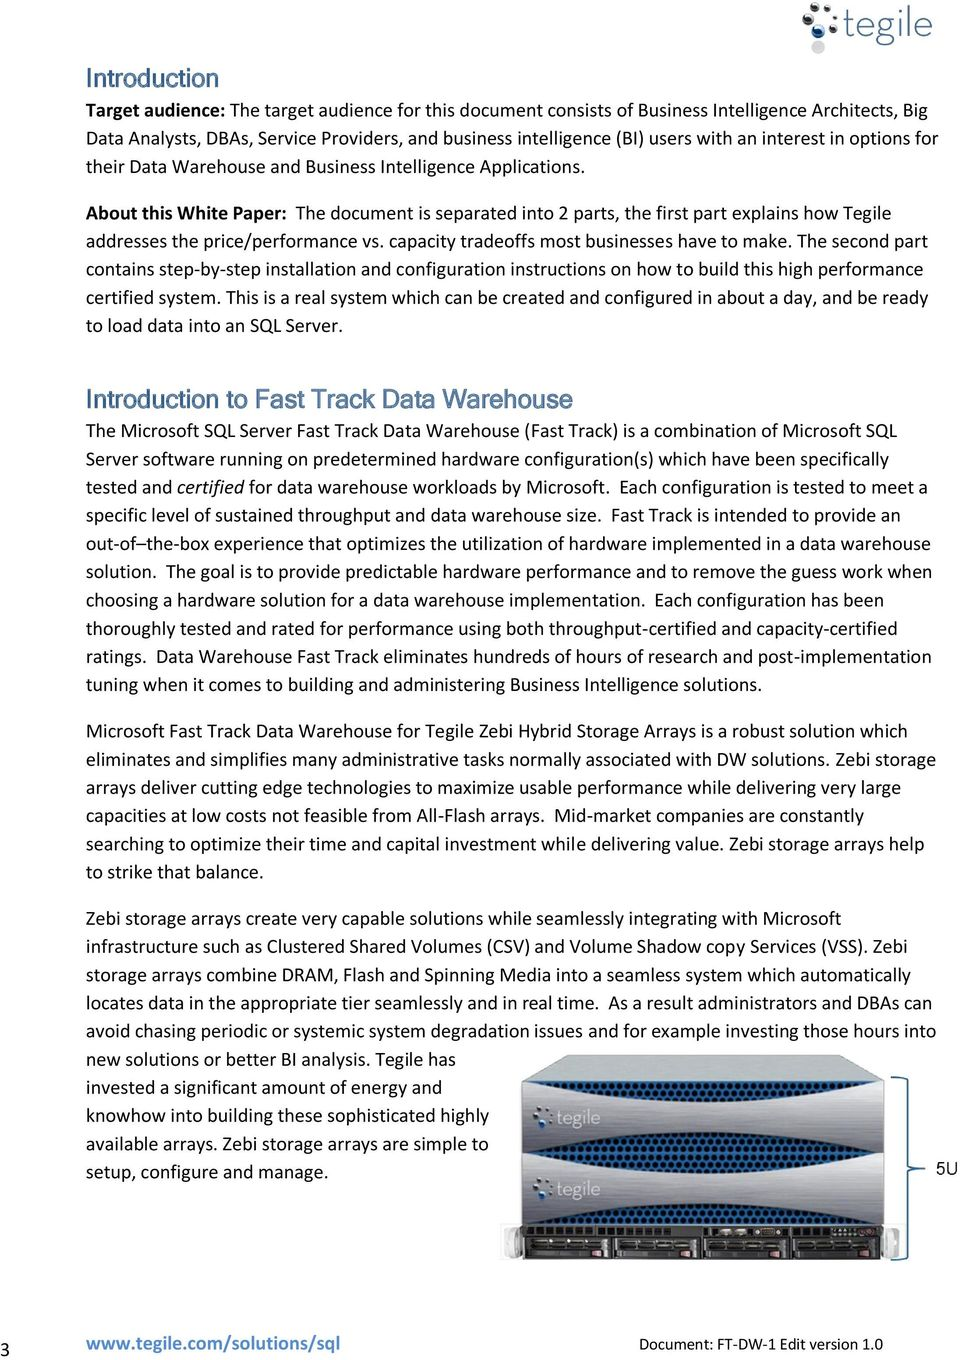 About this White Paper: The document is separated into 2 parts, the first part explains how Tegile addresses the price/performance vs. capacity tradeoffs most businesses have to make.